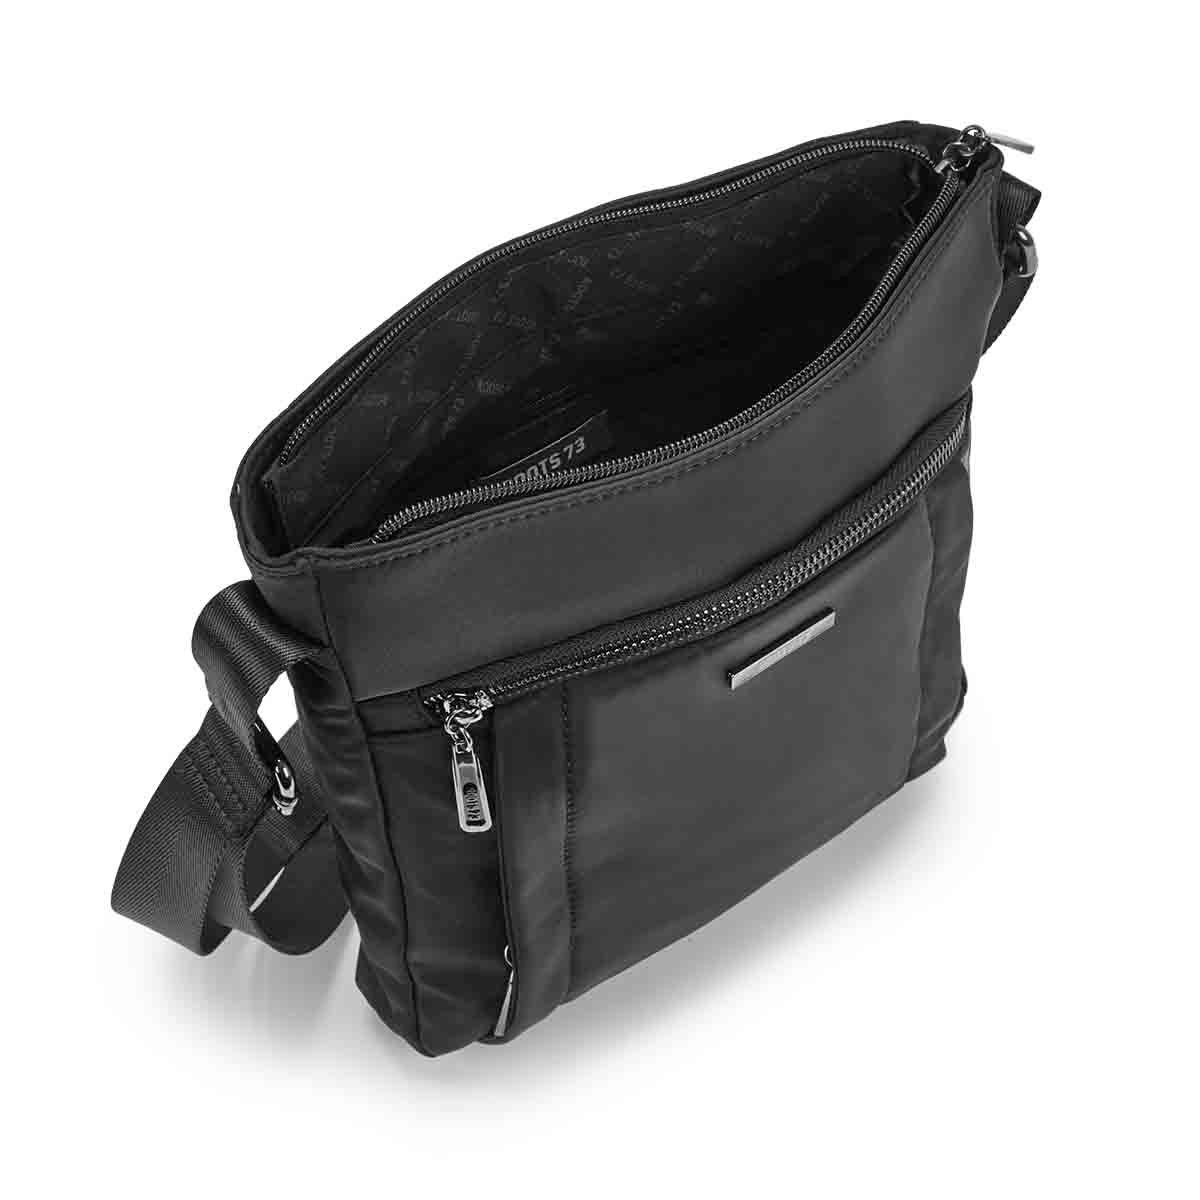 Lds Roots73 black north/south cross body